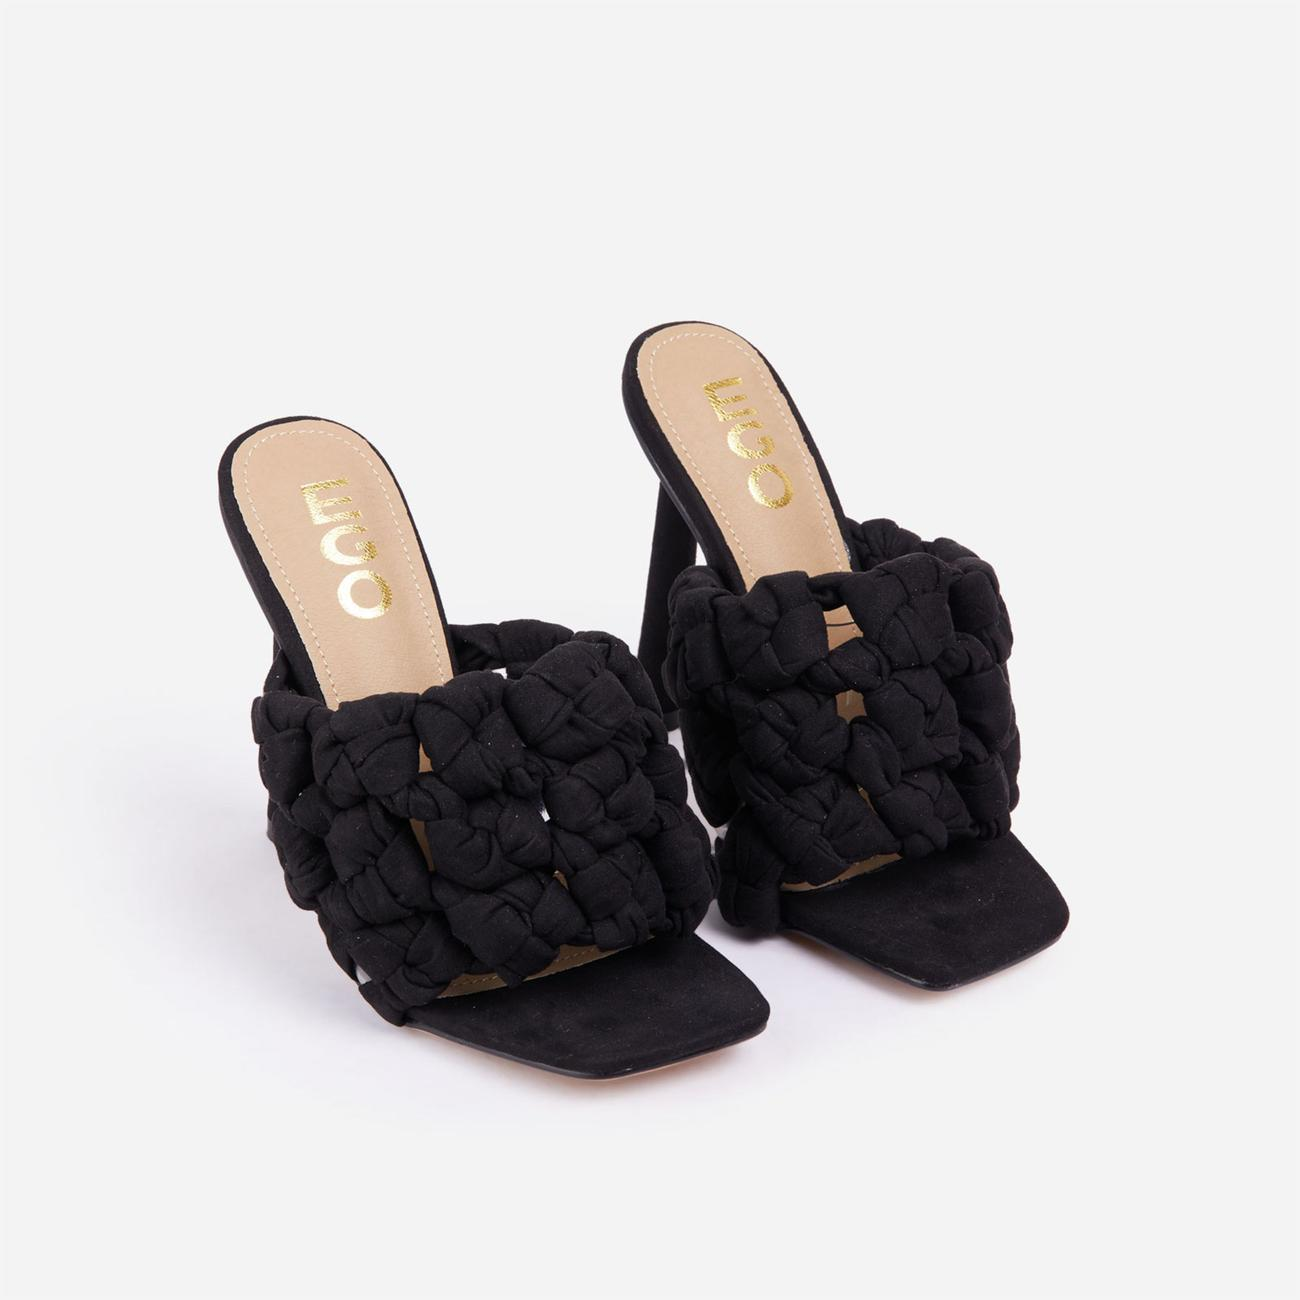 K-O Knotted Detail Square Open Toe Heel Mule In Black Faux Suede Image 2